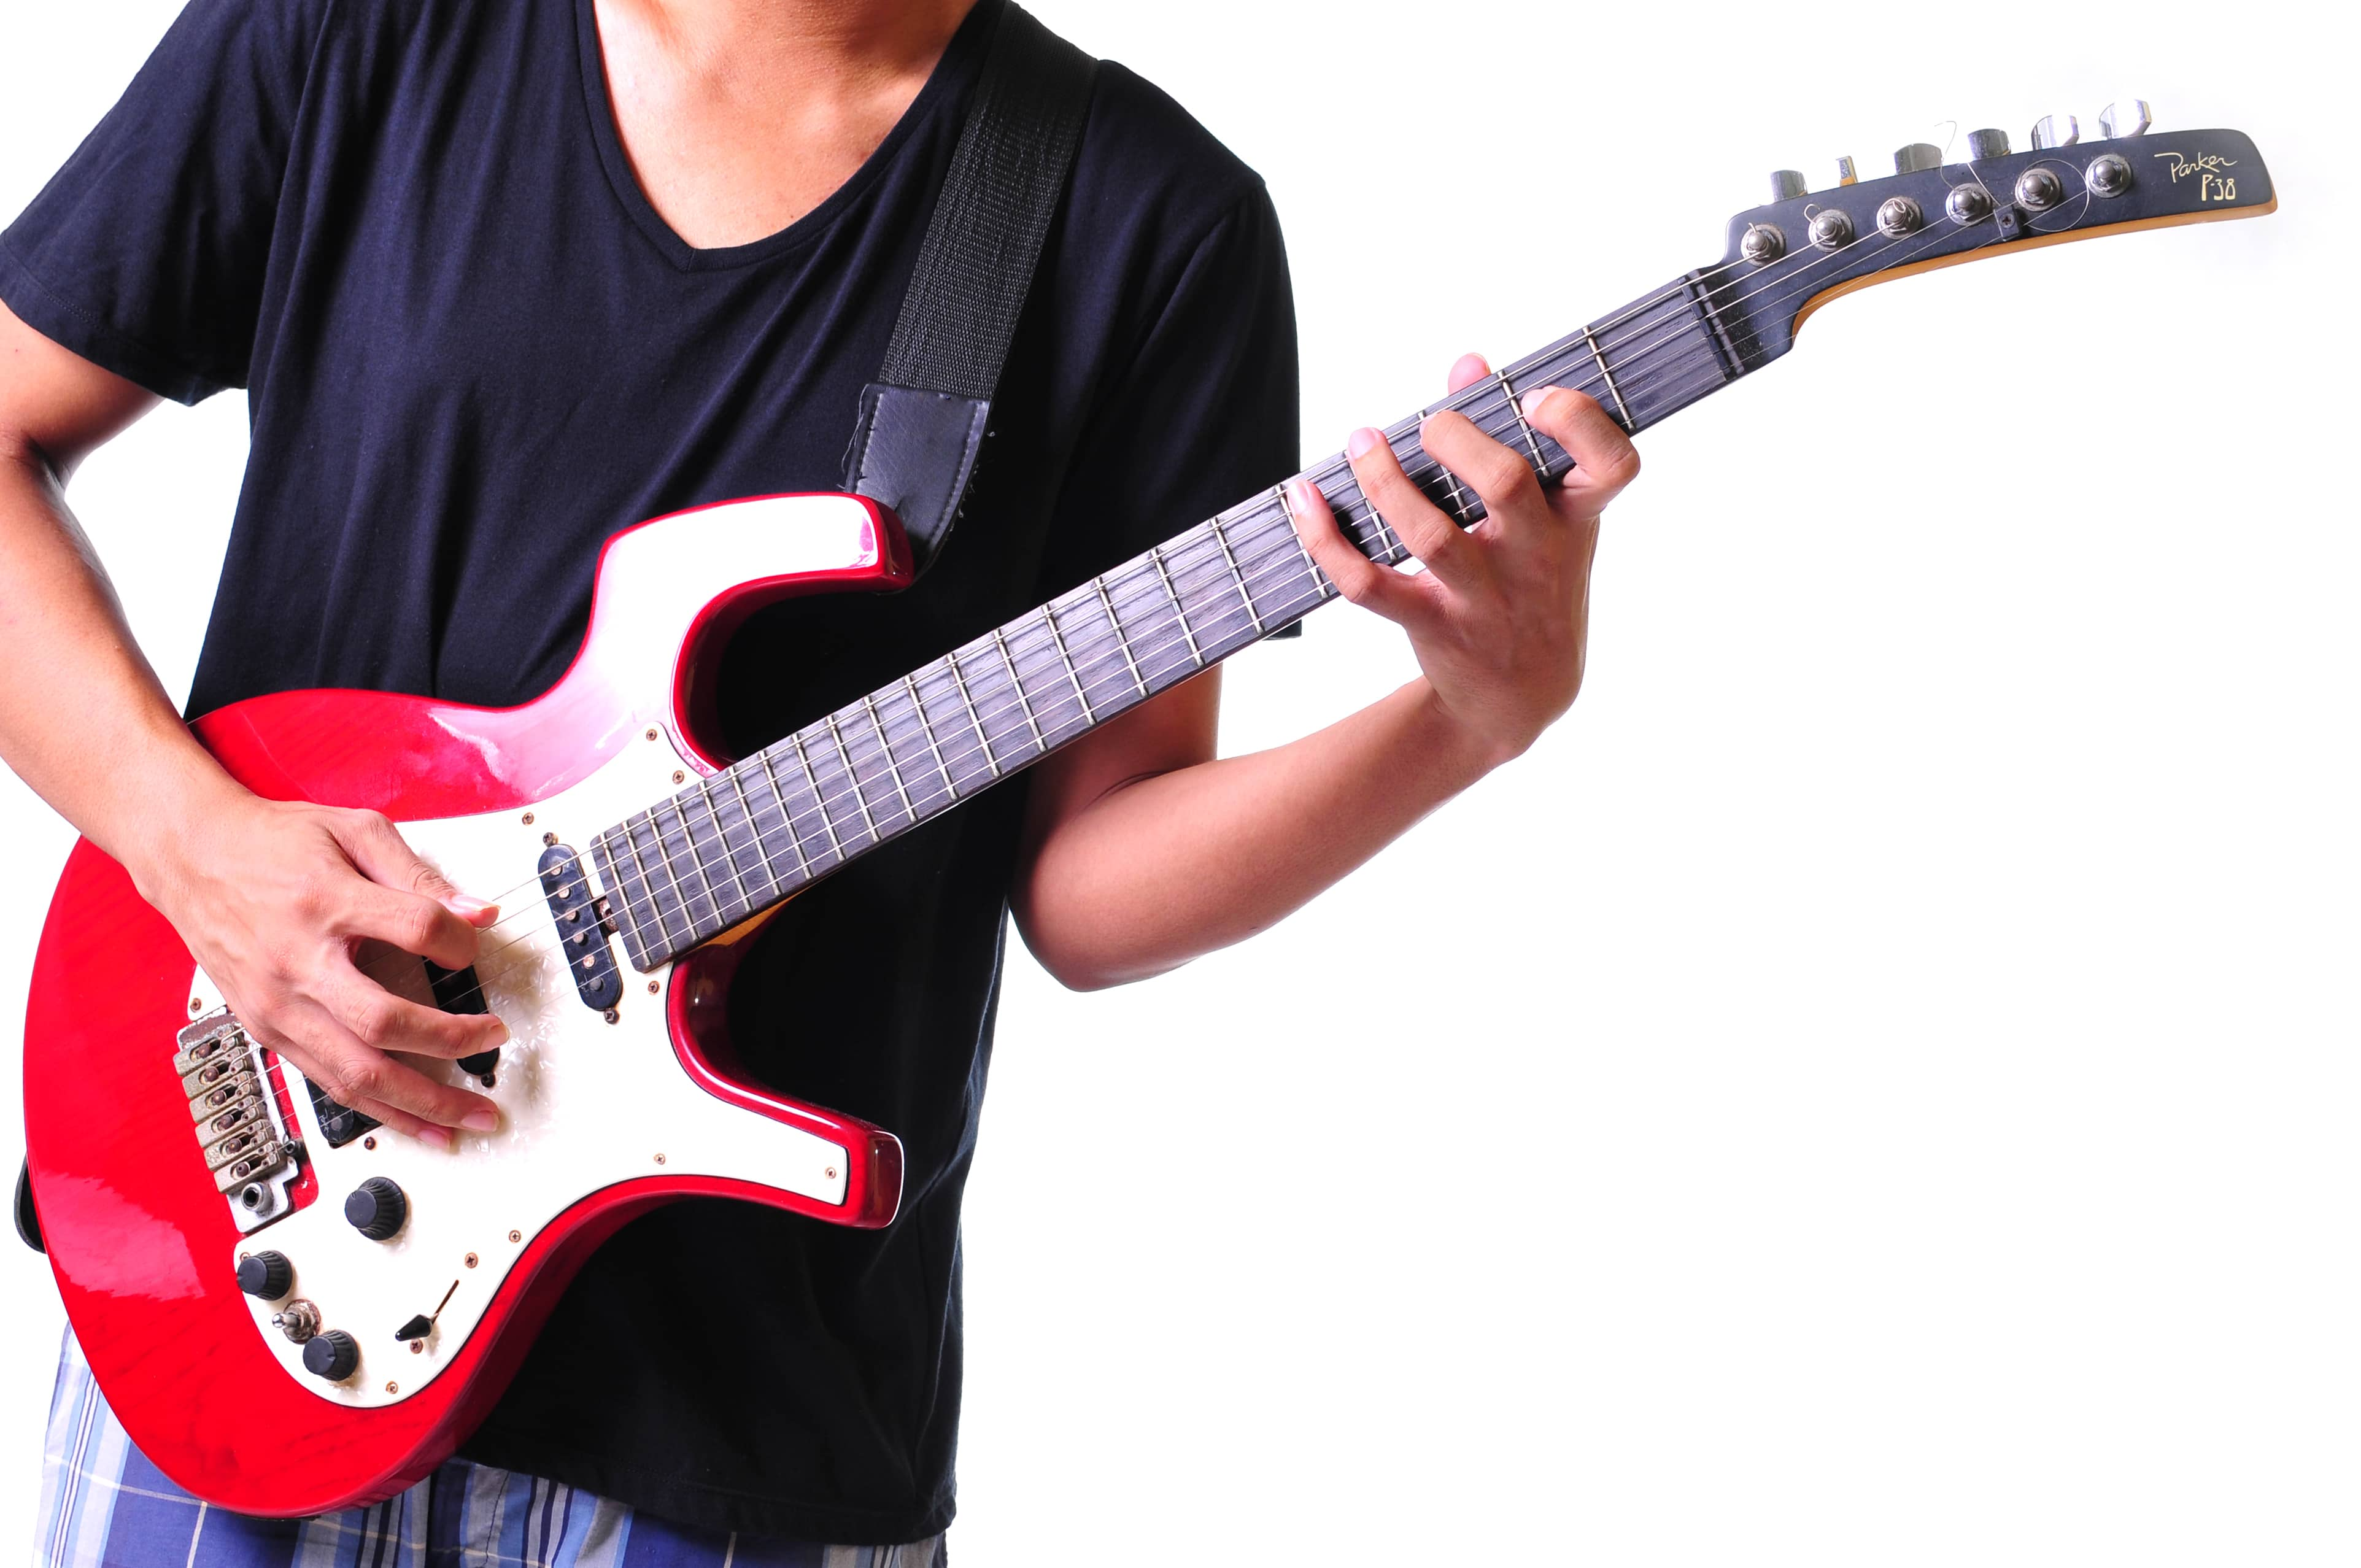 10 Best Electric Guitars For Beginners In 2018 Reviews Analysis